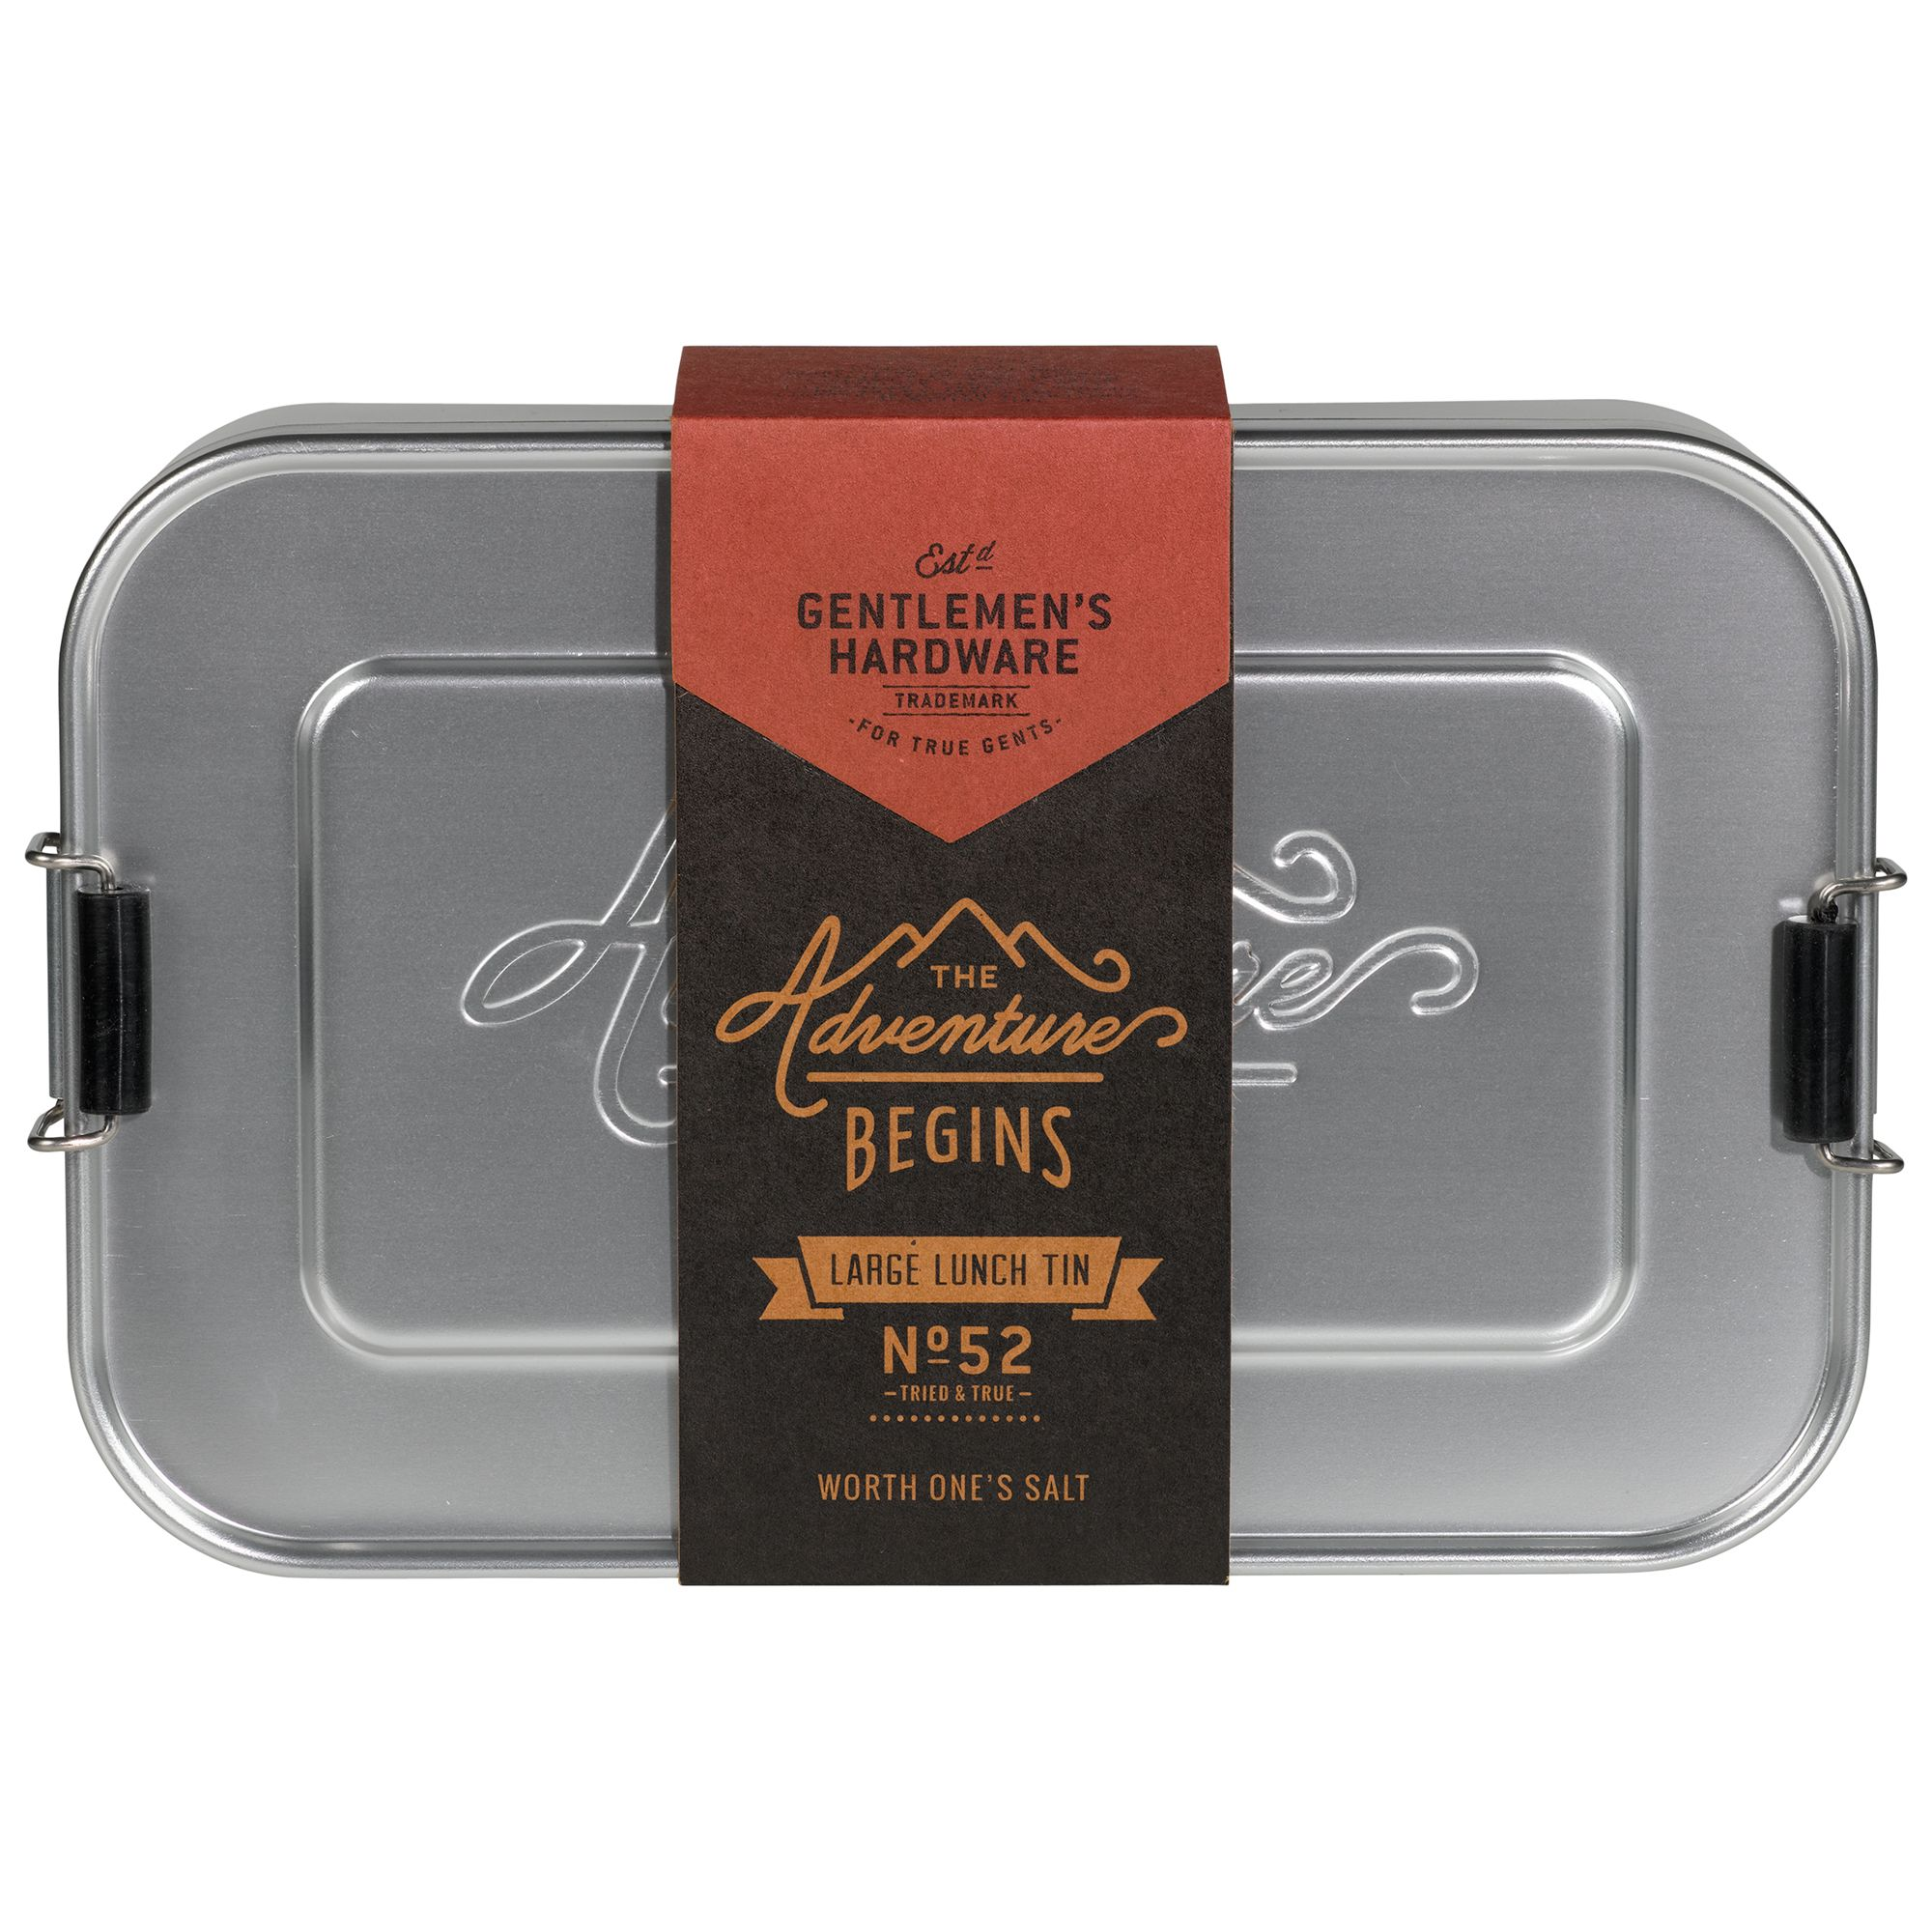 Gentlemen's Hardware Gentlemen's Hardware Metal Lunch Box, Large